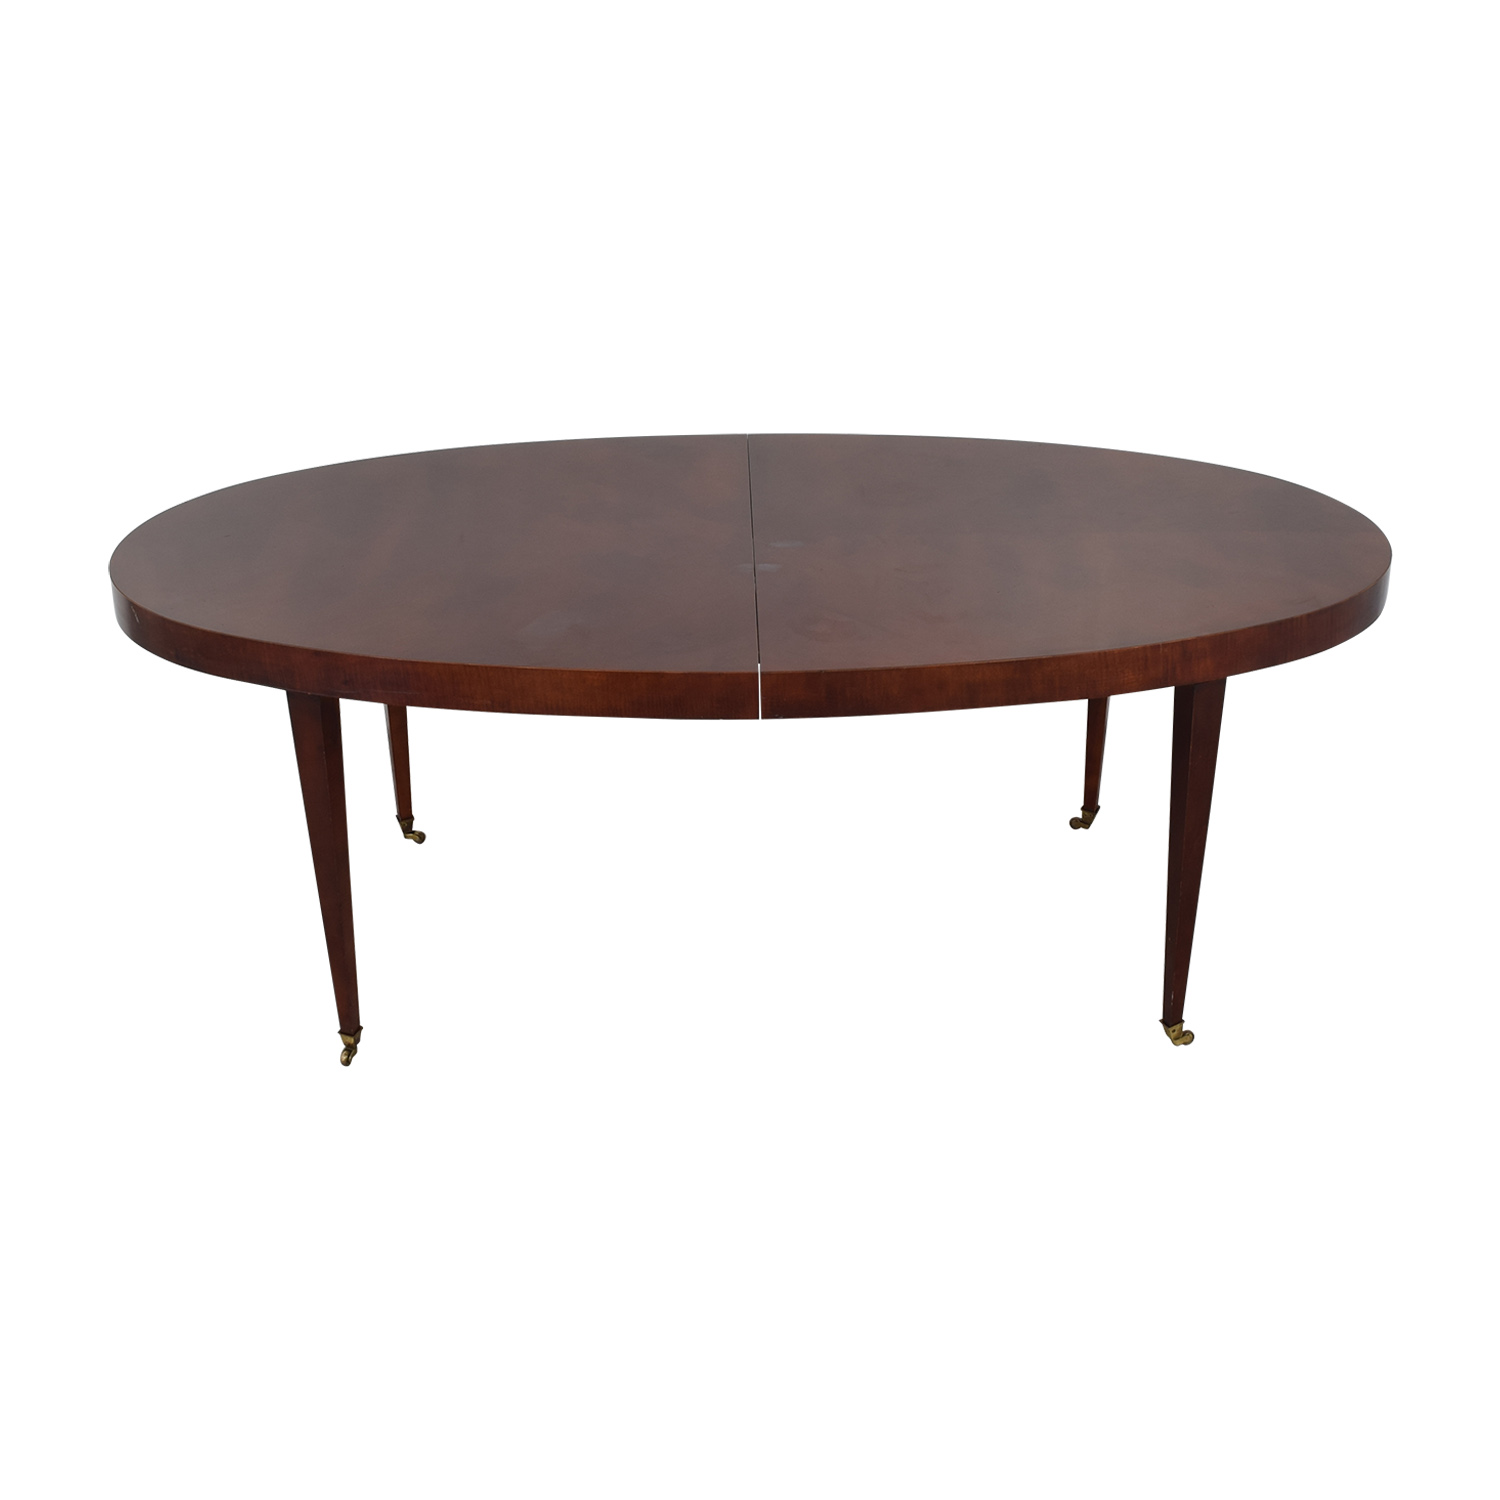 Baker Furniture Archetype Dining Table